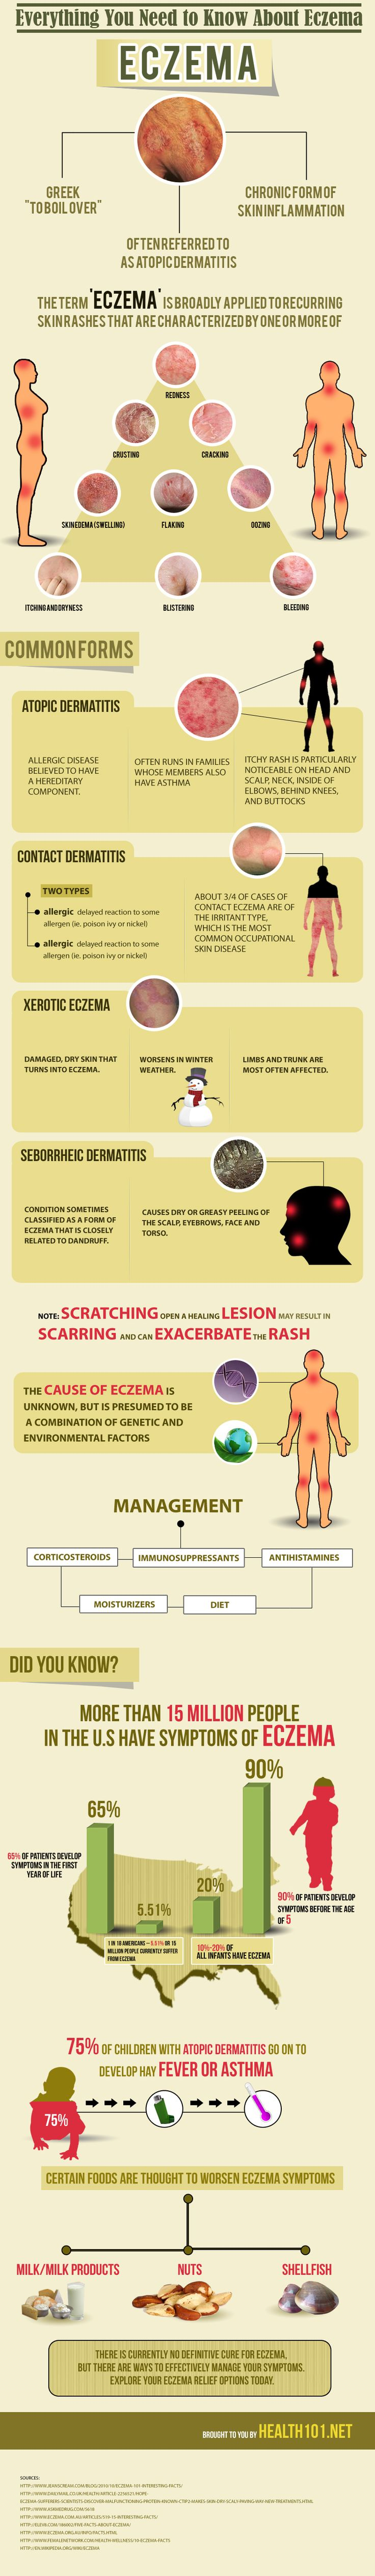 Eczema is chronic skin inflammation that appears in various forms of skin swelling, redness, itching and dryness, flaking, crusting, blistering, oozing, and bleeding. Here is an infographic that points out some important facts to about this irritating skin condition.